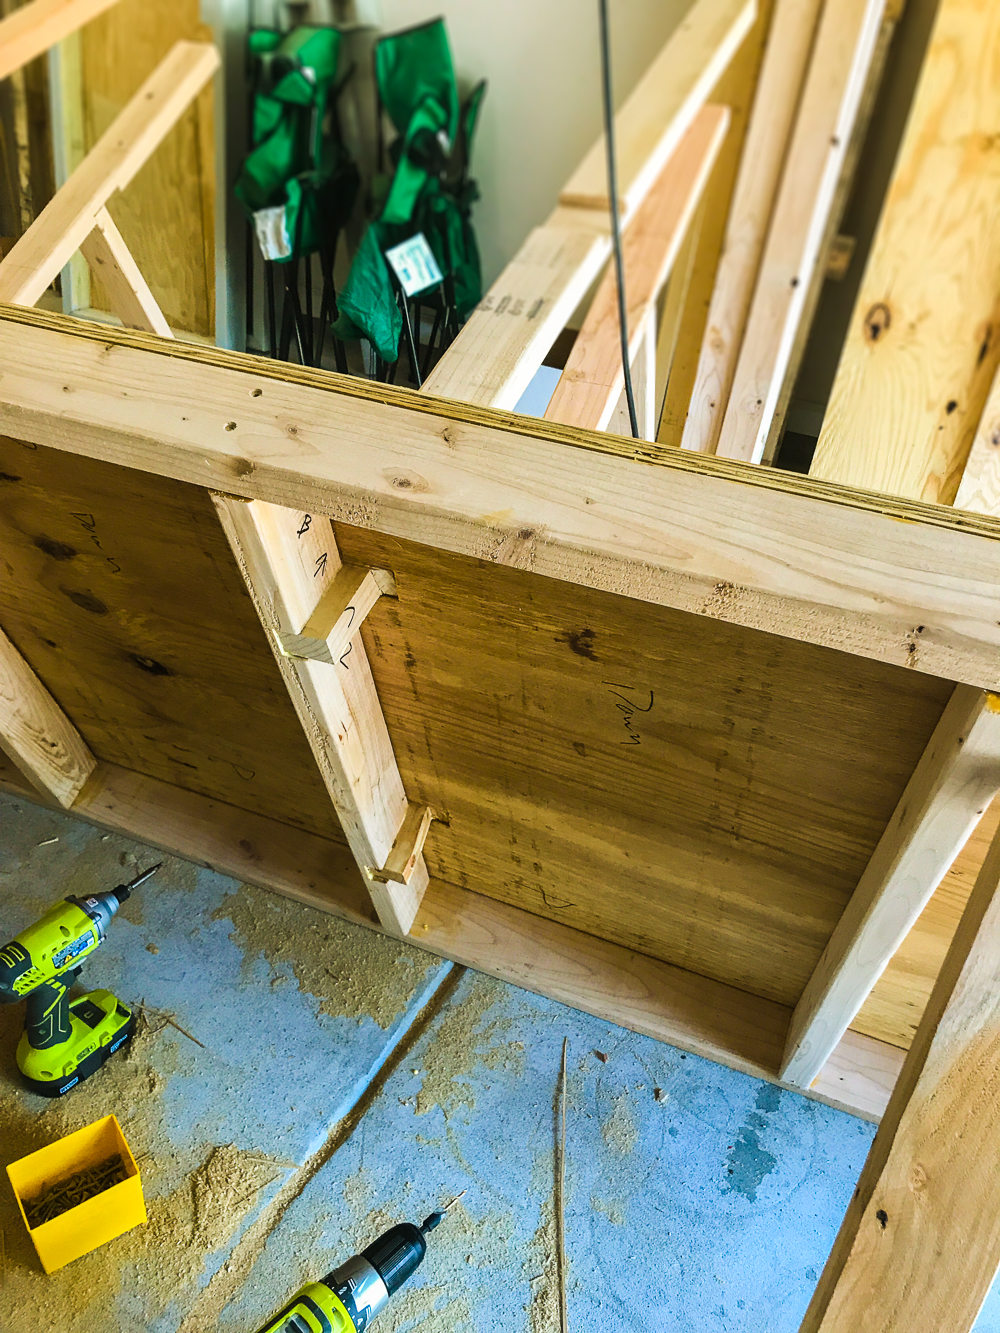 Lumber Cart - All Verticals Set in Place for Glue